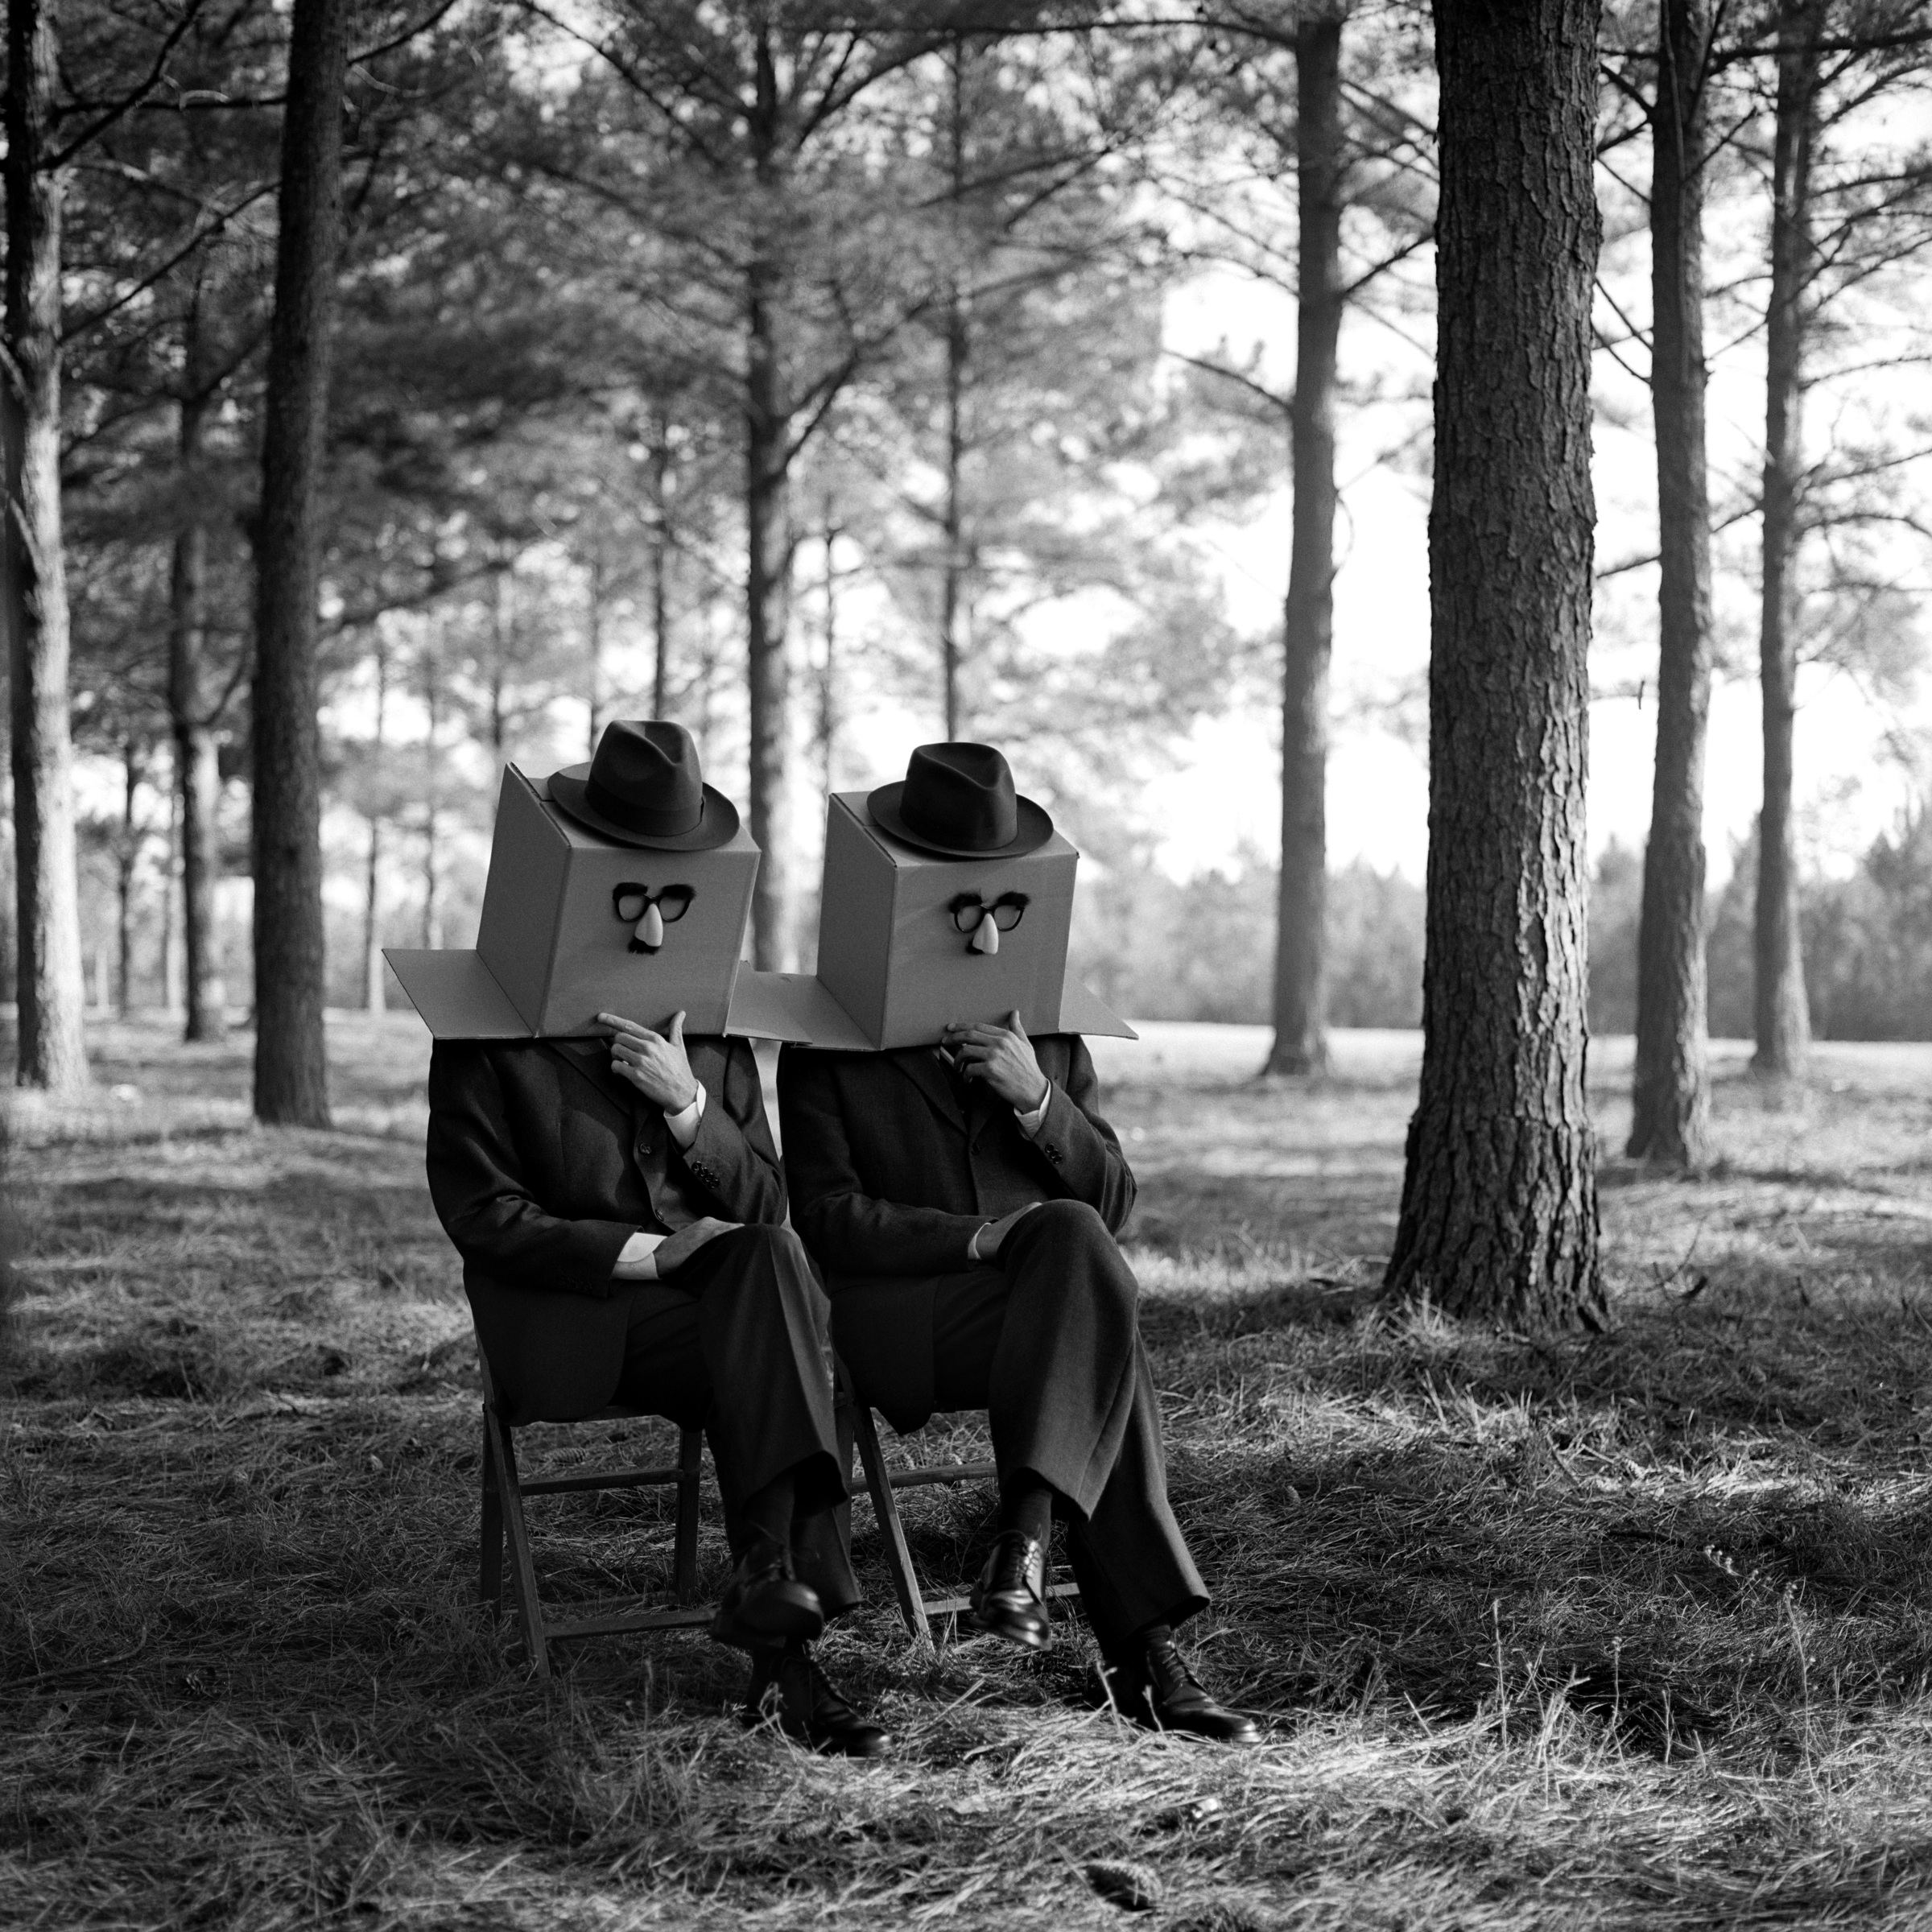 Men with Boxes on Head,   Brunswick, GA  2011 Archival pigment print 69 x 69 cm (image) 89 x 99 cm (paper)